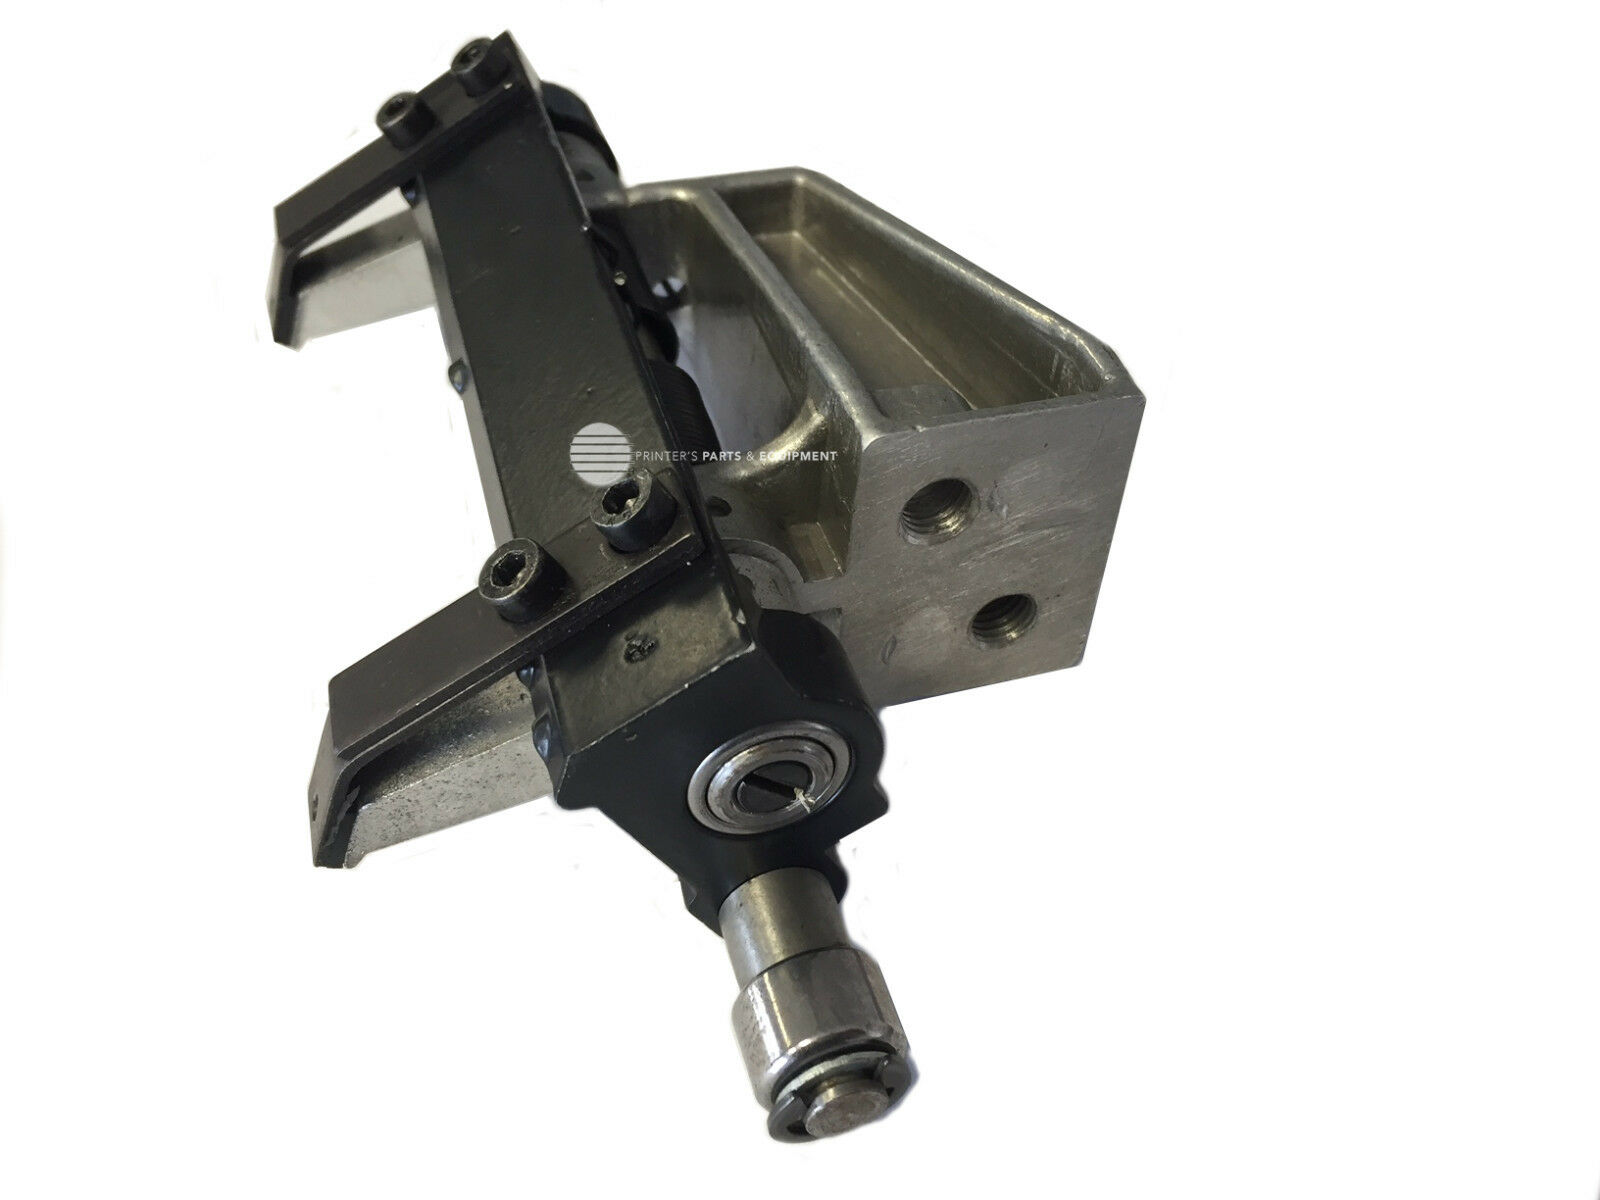 Details about Feed Gripper Complete Assembly For Heidelberg GTO46 GTO52  Offset Printing Parts